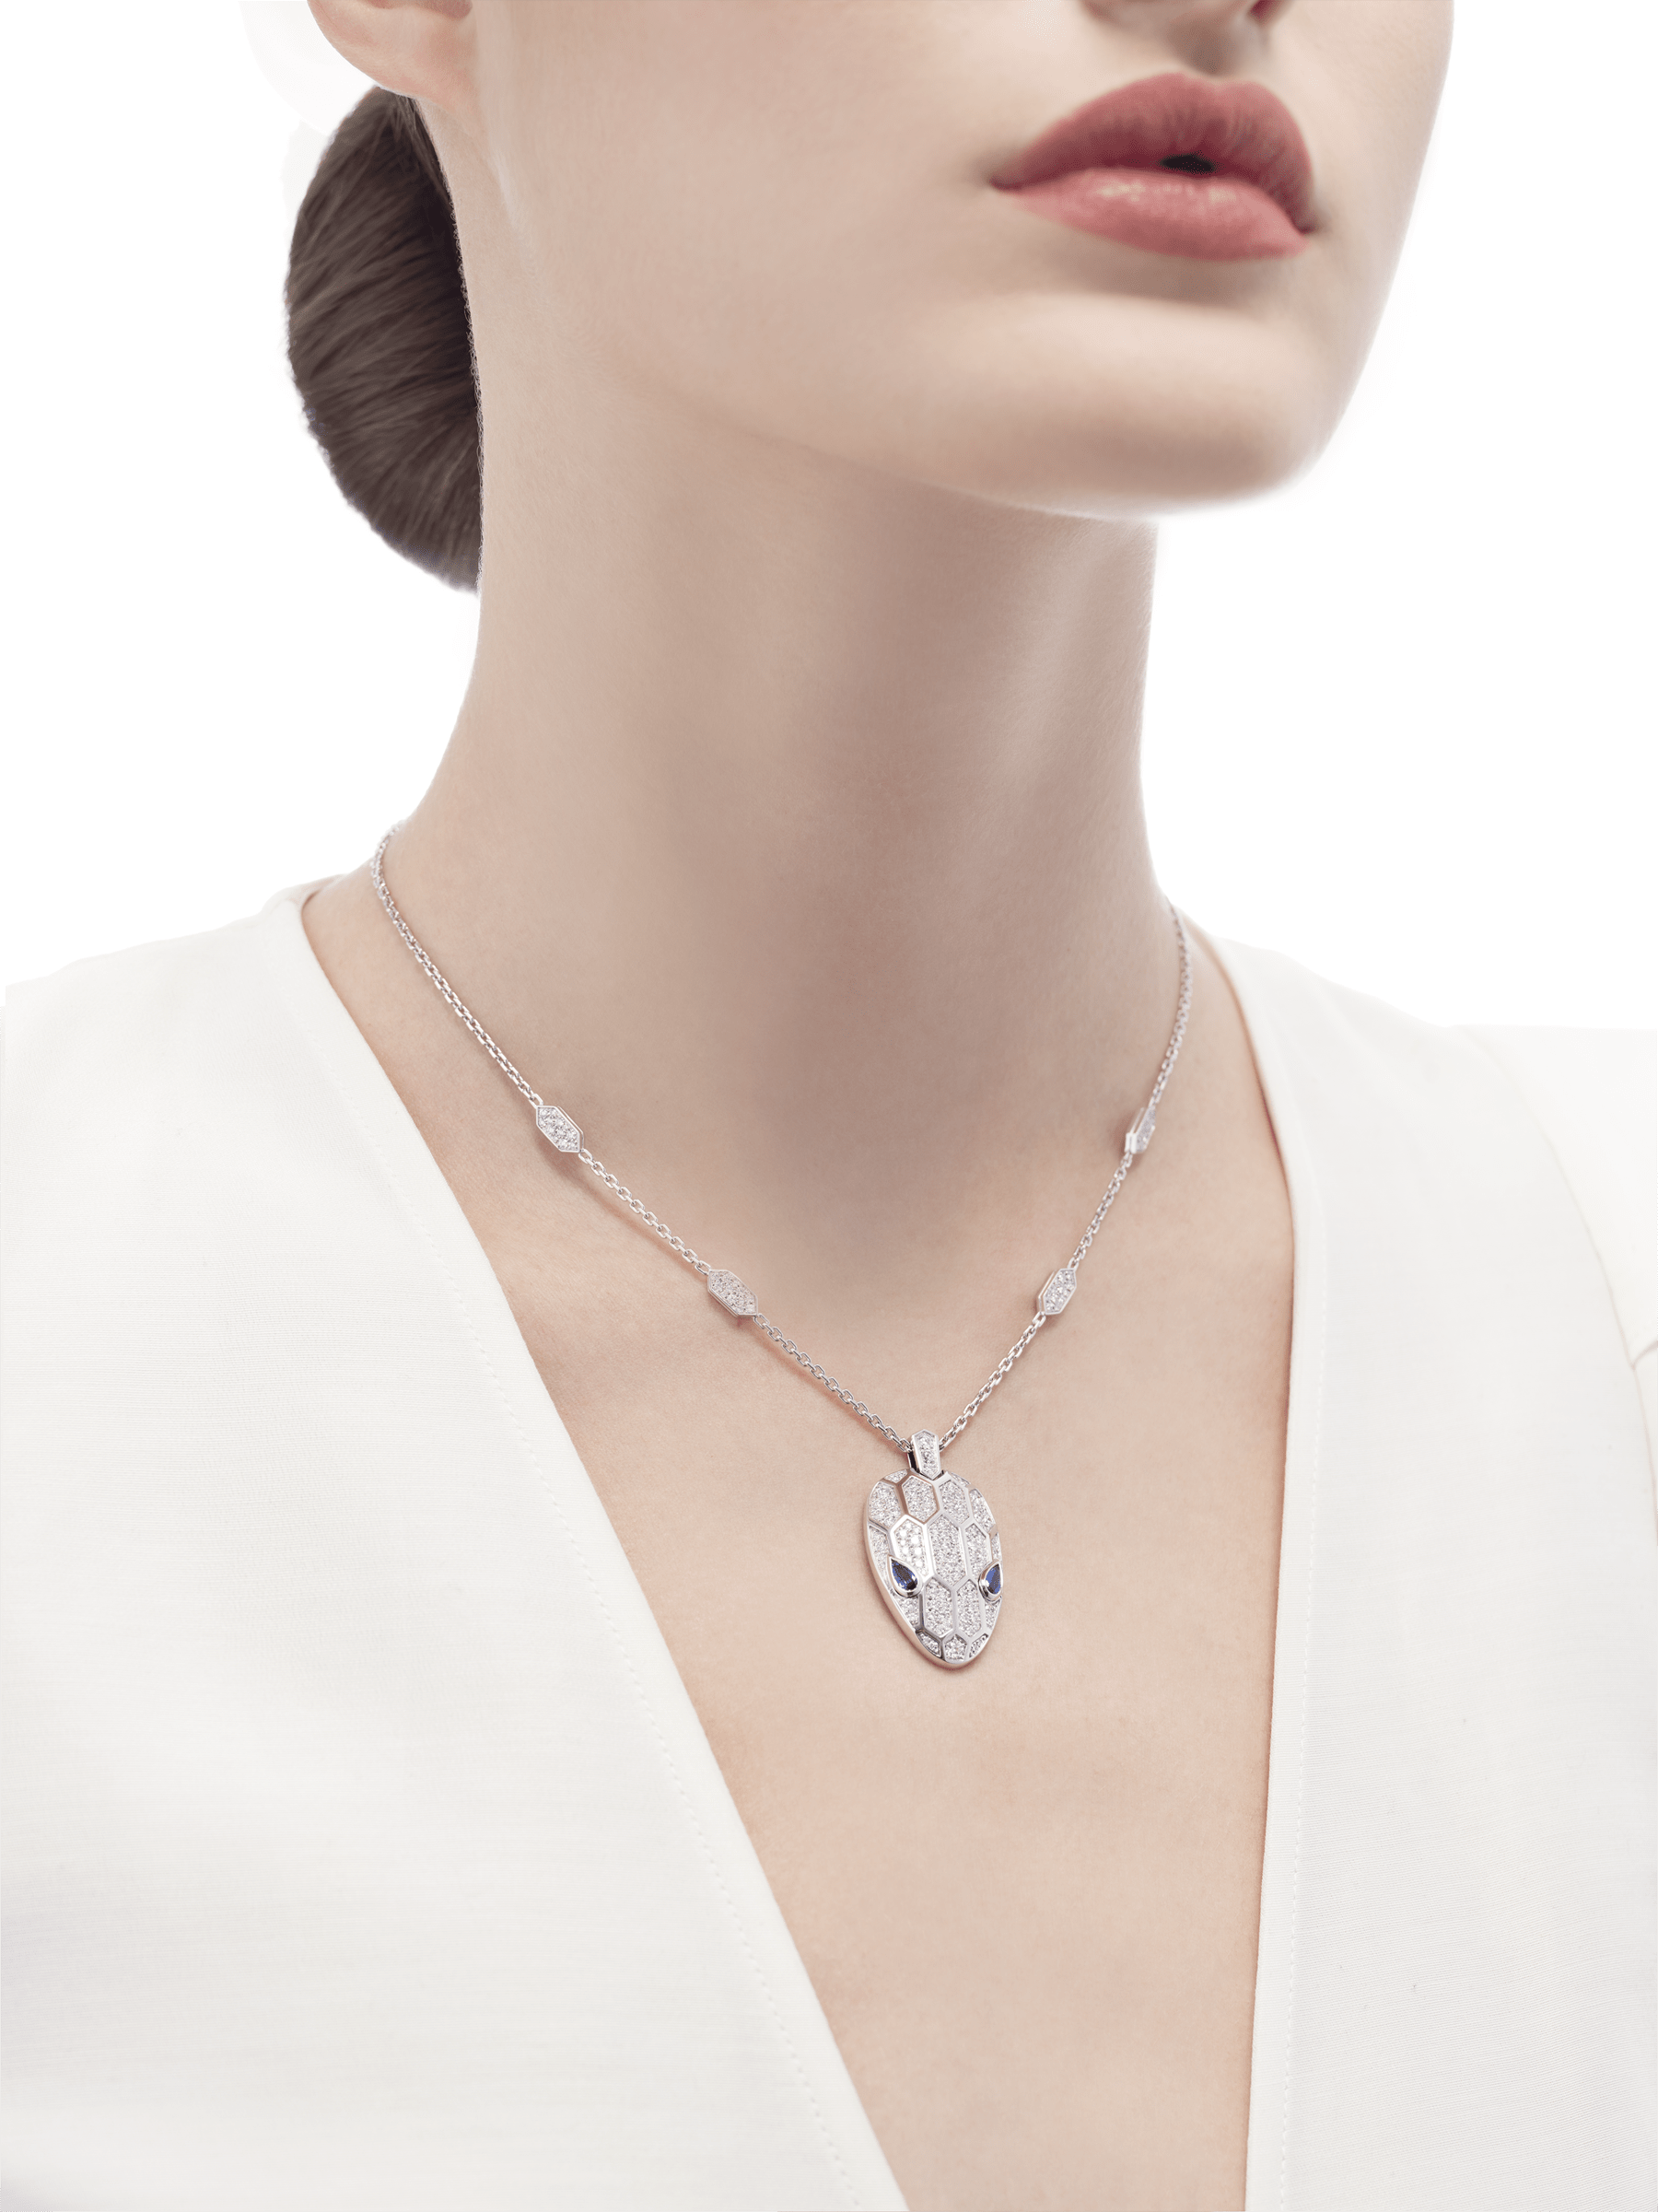 Serpenti necklace in 18 kt white gold set with blue sapphire eyes and pavé diamonds on both the chain and the pendant. 353529 image 4